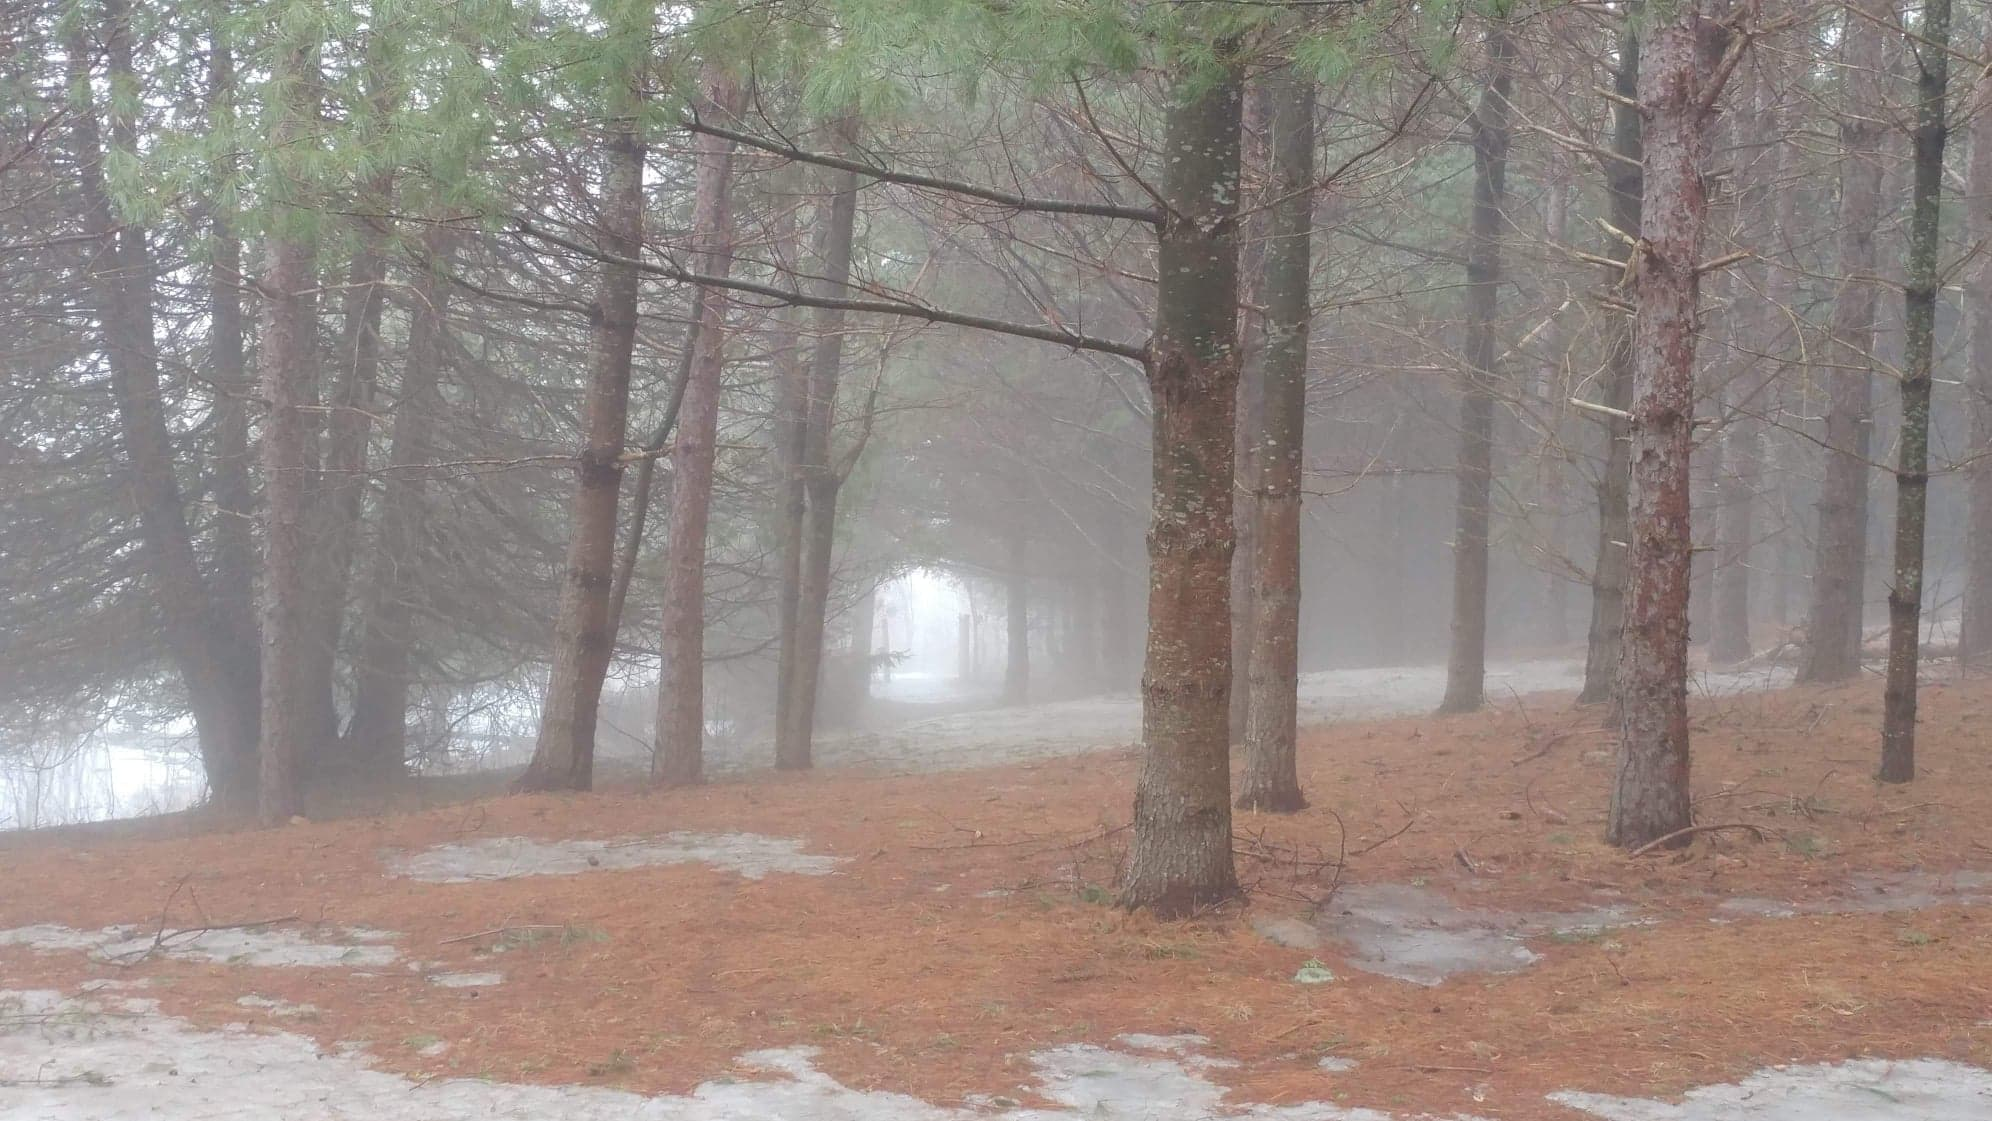 Coniferous trees with mist around them. Dry pine needles and patches of snow on the ground.